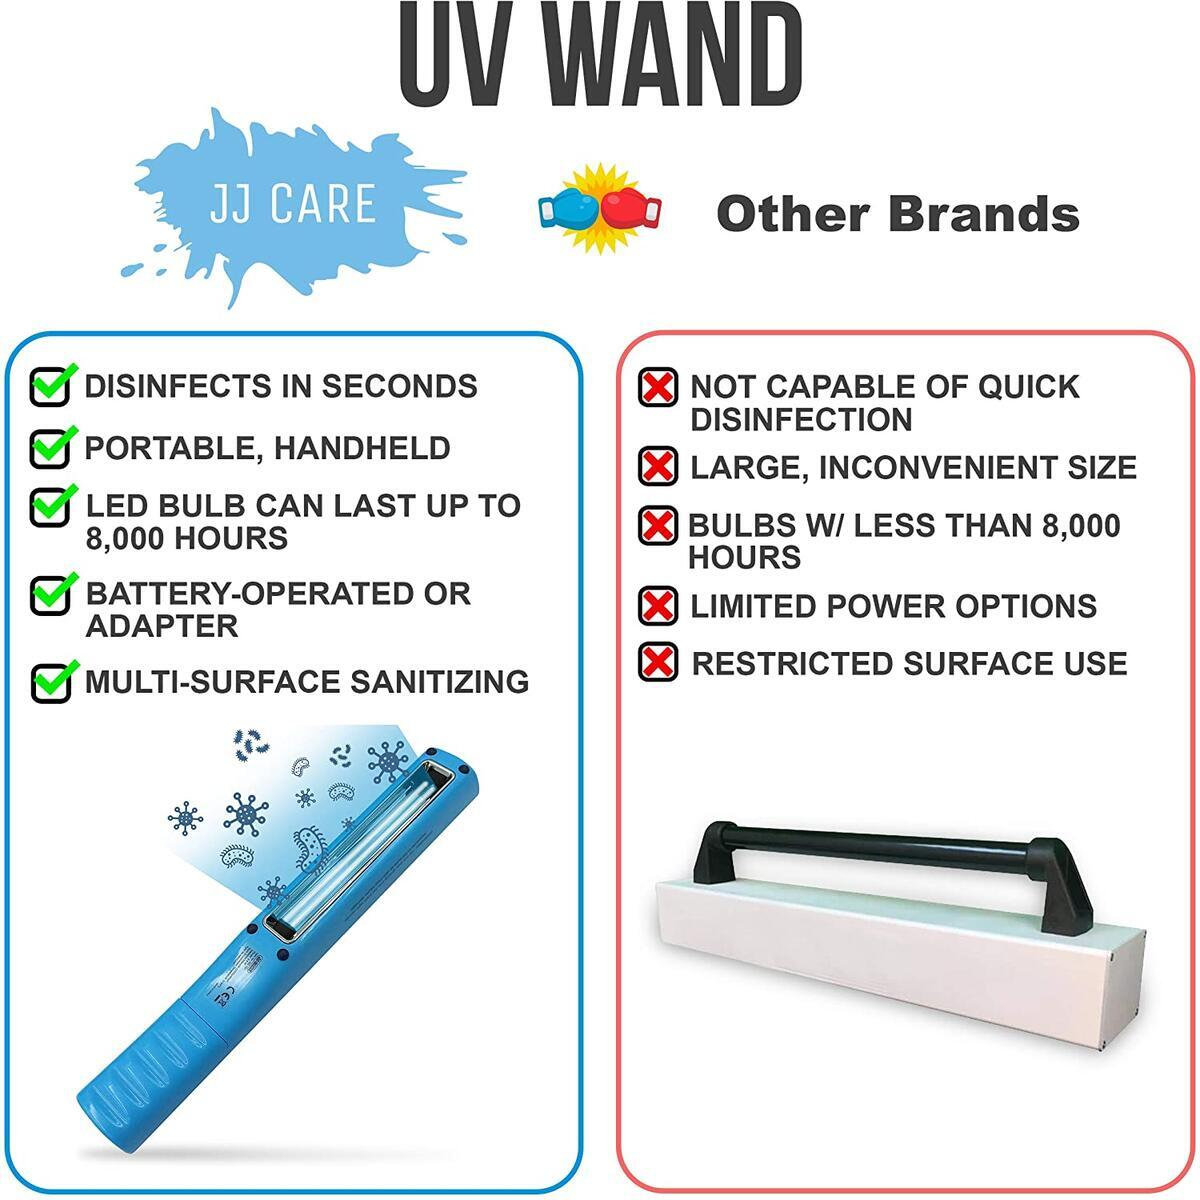 JJ CARE Premium UV Sanitizer Wand, UV Sterilizer Wand, Sterilizing Wand, Sanitizing Wand, Handheld UV Disinfection Wand for Travel or Home Powered by Adapter or Batteries